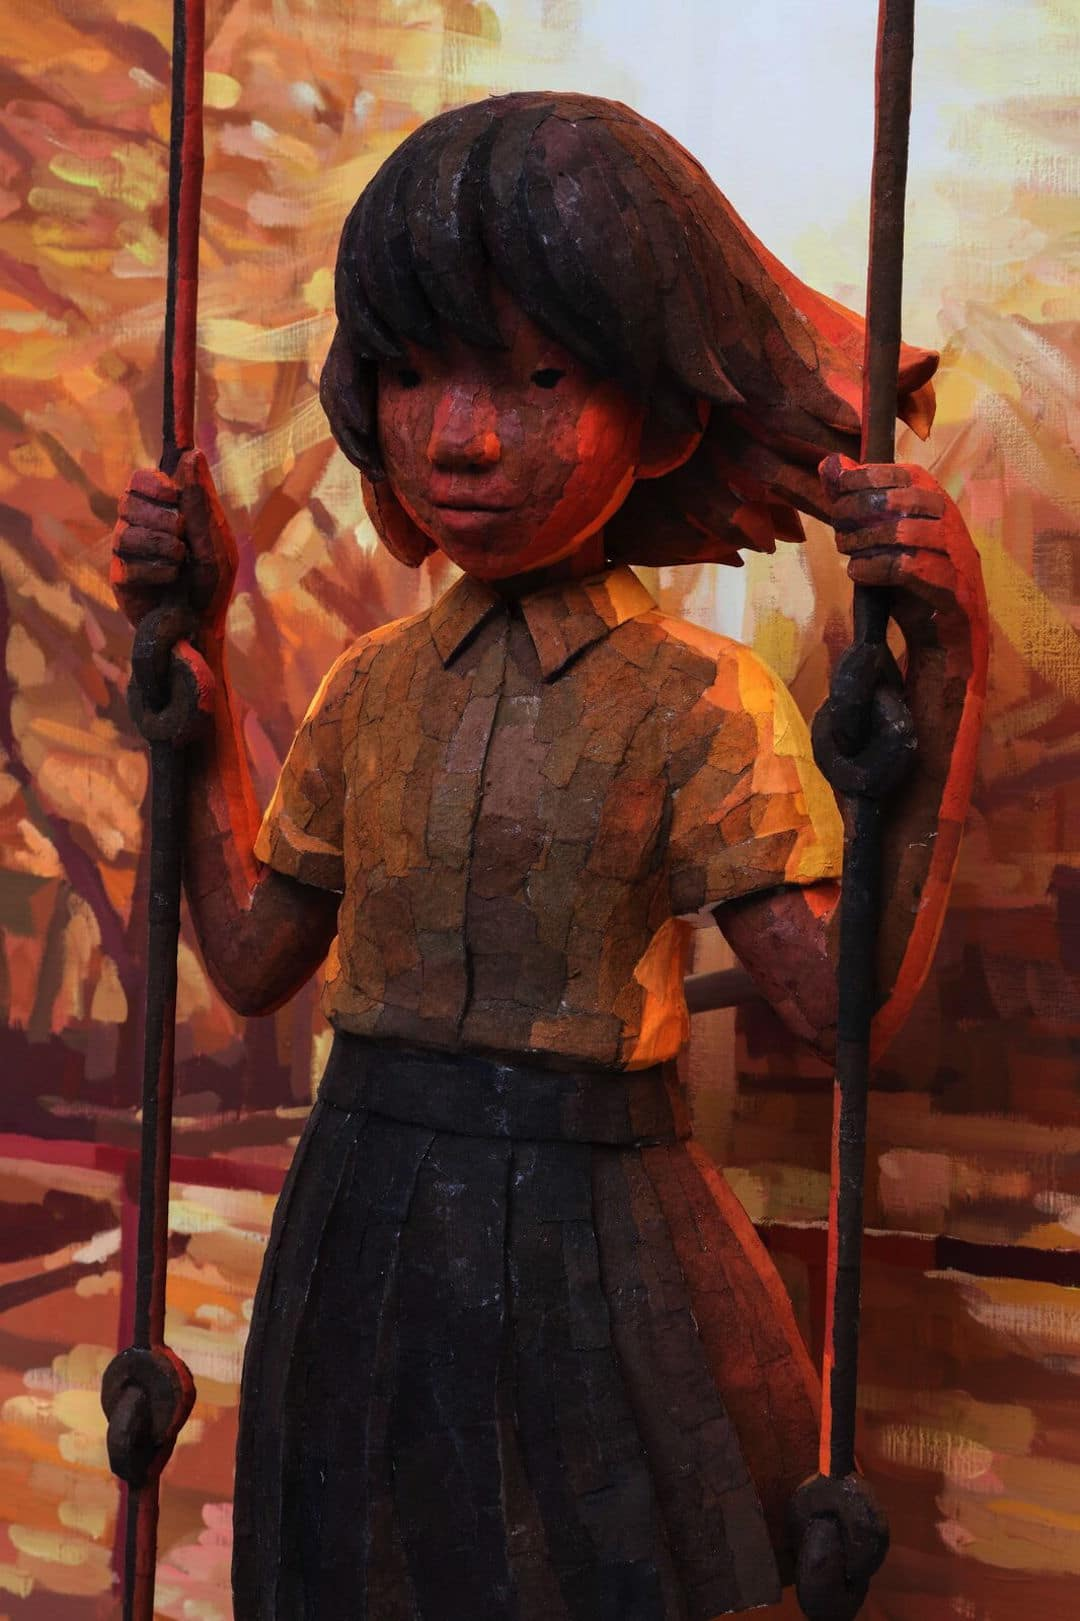 3D Sculpture Painting by Ohata Shintaro